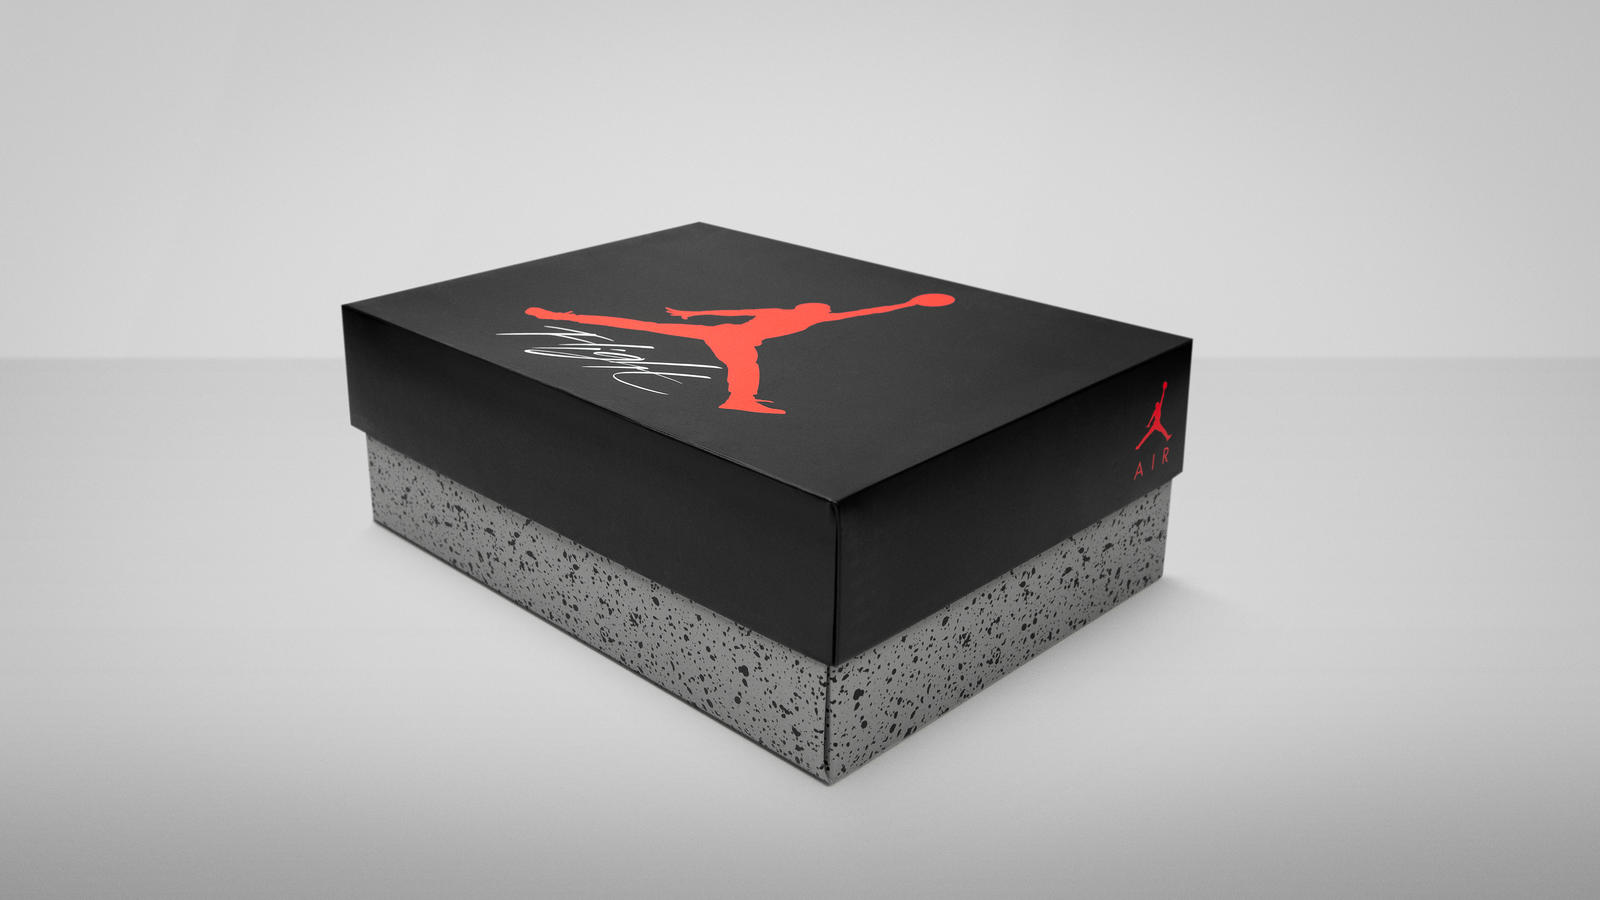 Air Jordan 4 Bred Official Images and Release Date 8